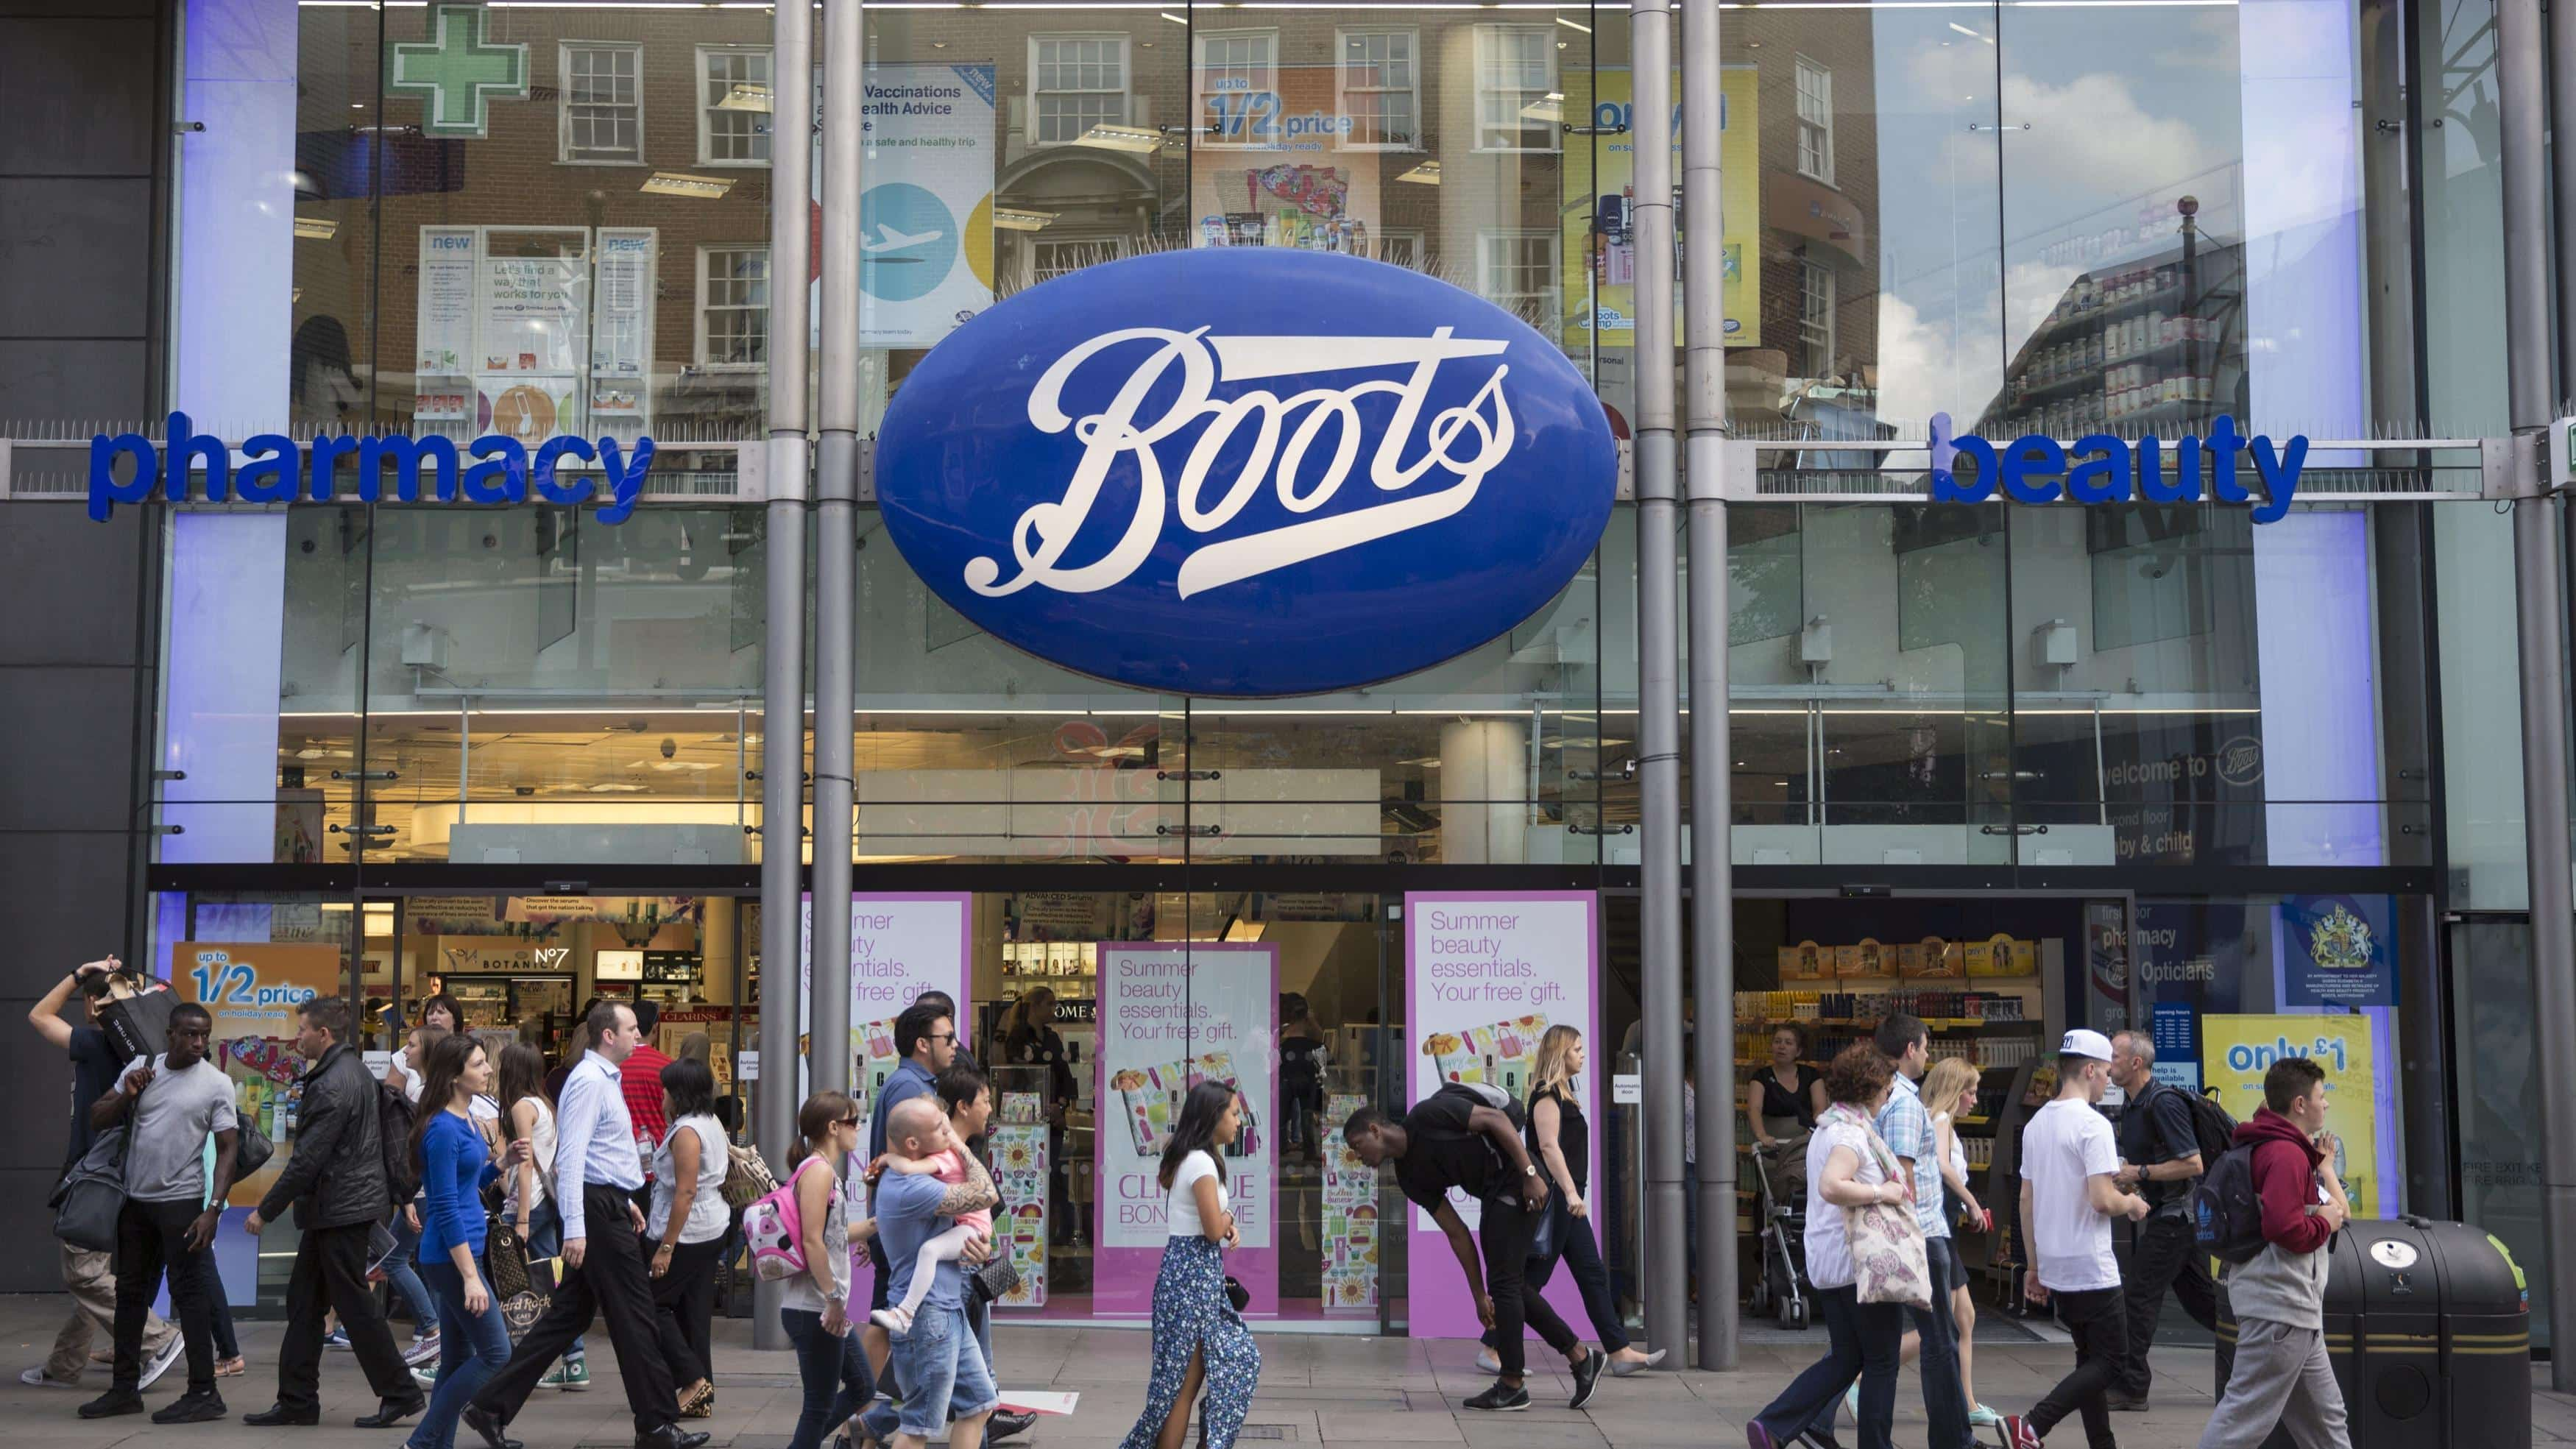 British Pharmacy Chain Boots Warns of Store Closures